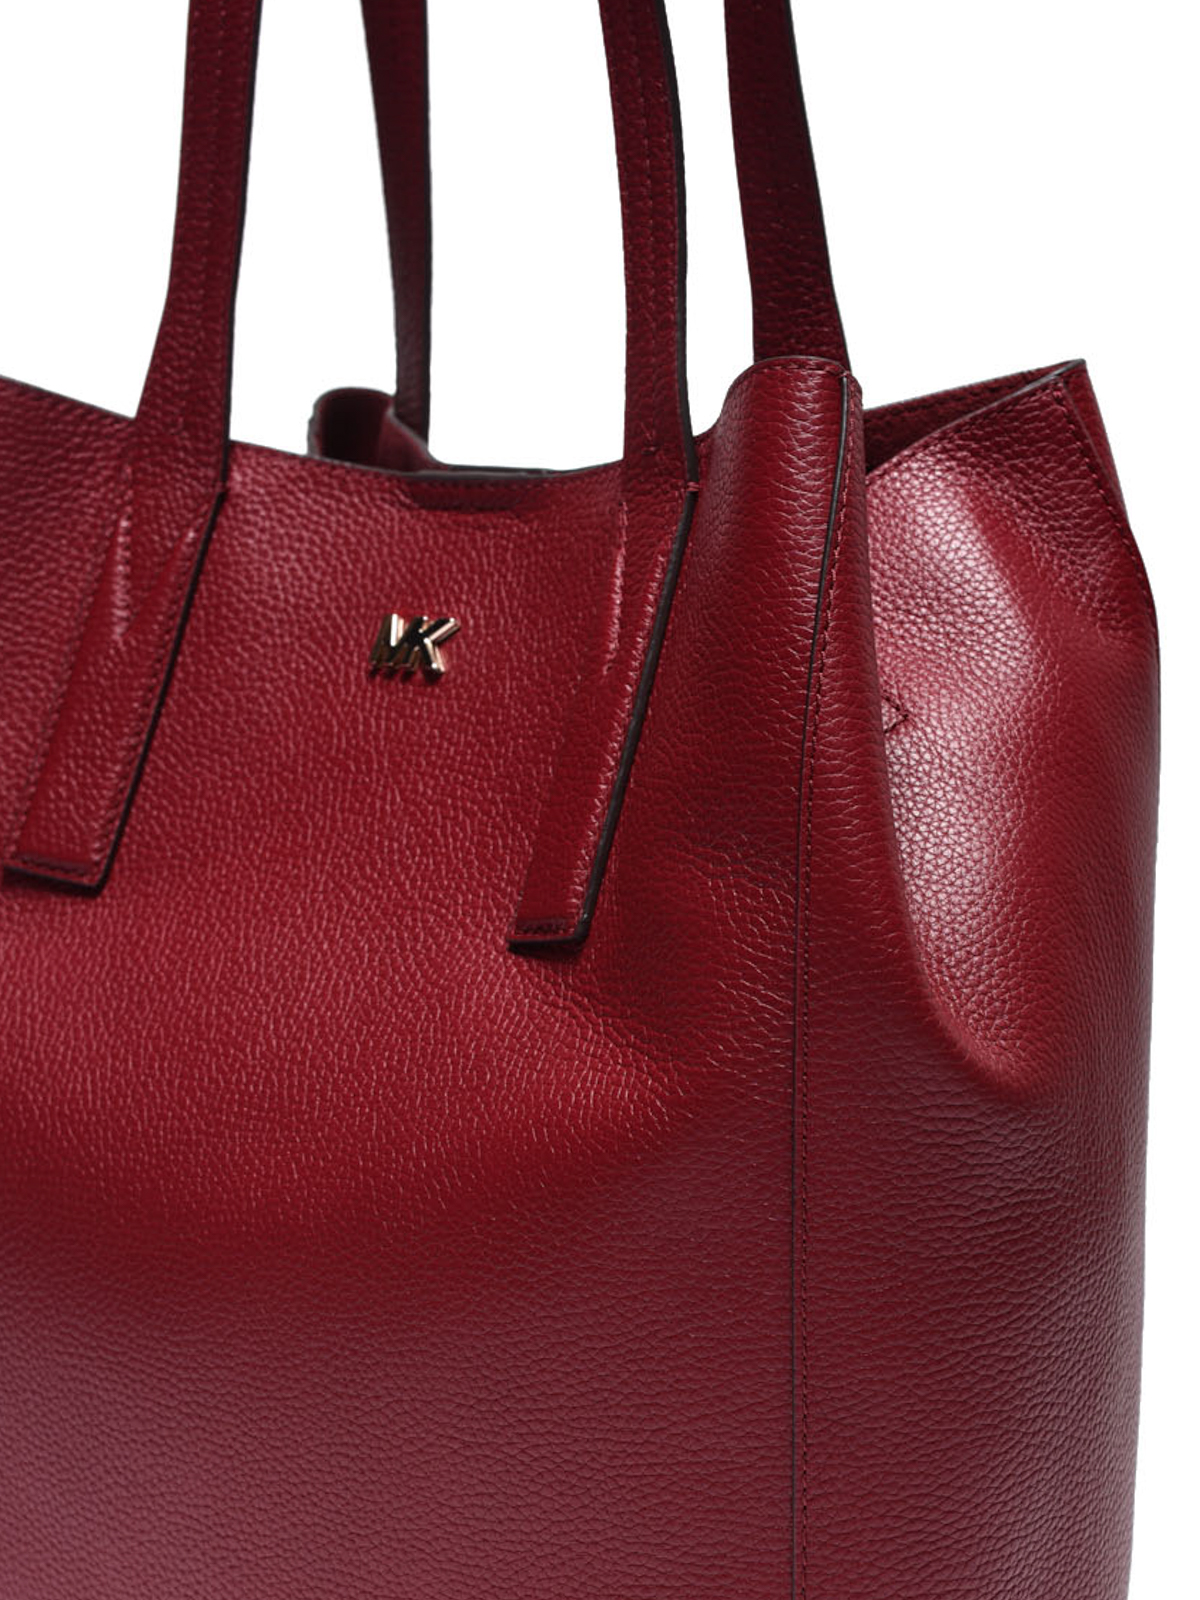 a15701619e9a0a Junie maroon leather large tote shop online: MICHAEL KORS. MICHAEL KORS: totes  bags ...